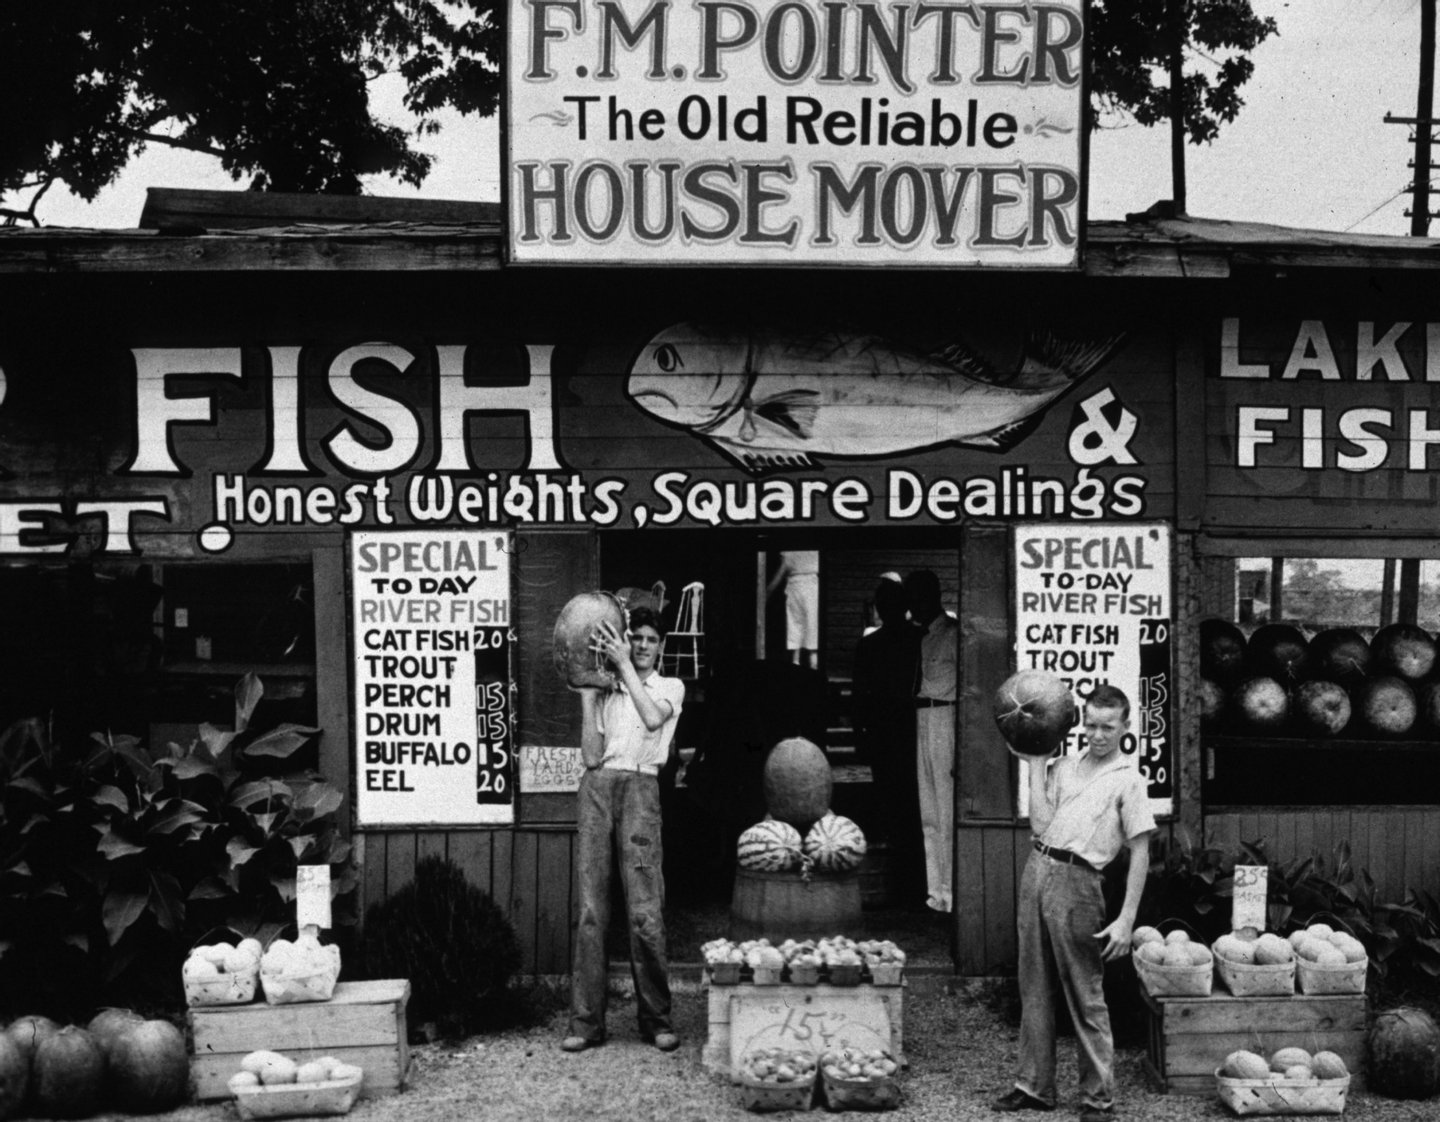 A roadside fish stand near Birmingham, Alabama   (Photo by Walker Evans/Getty Images)